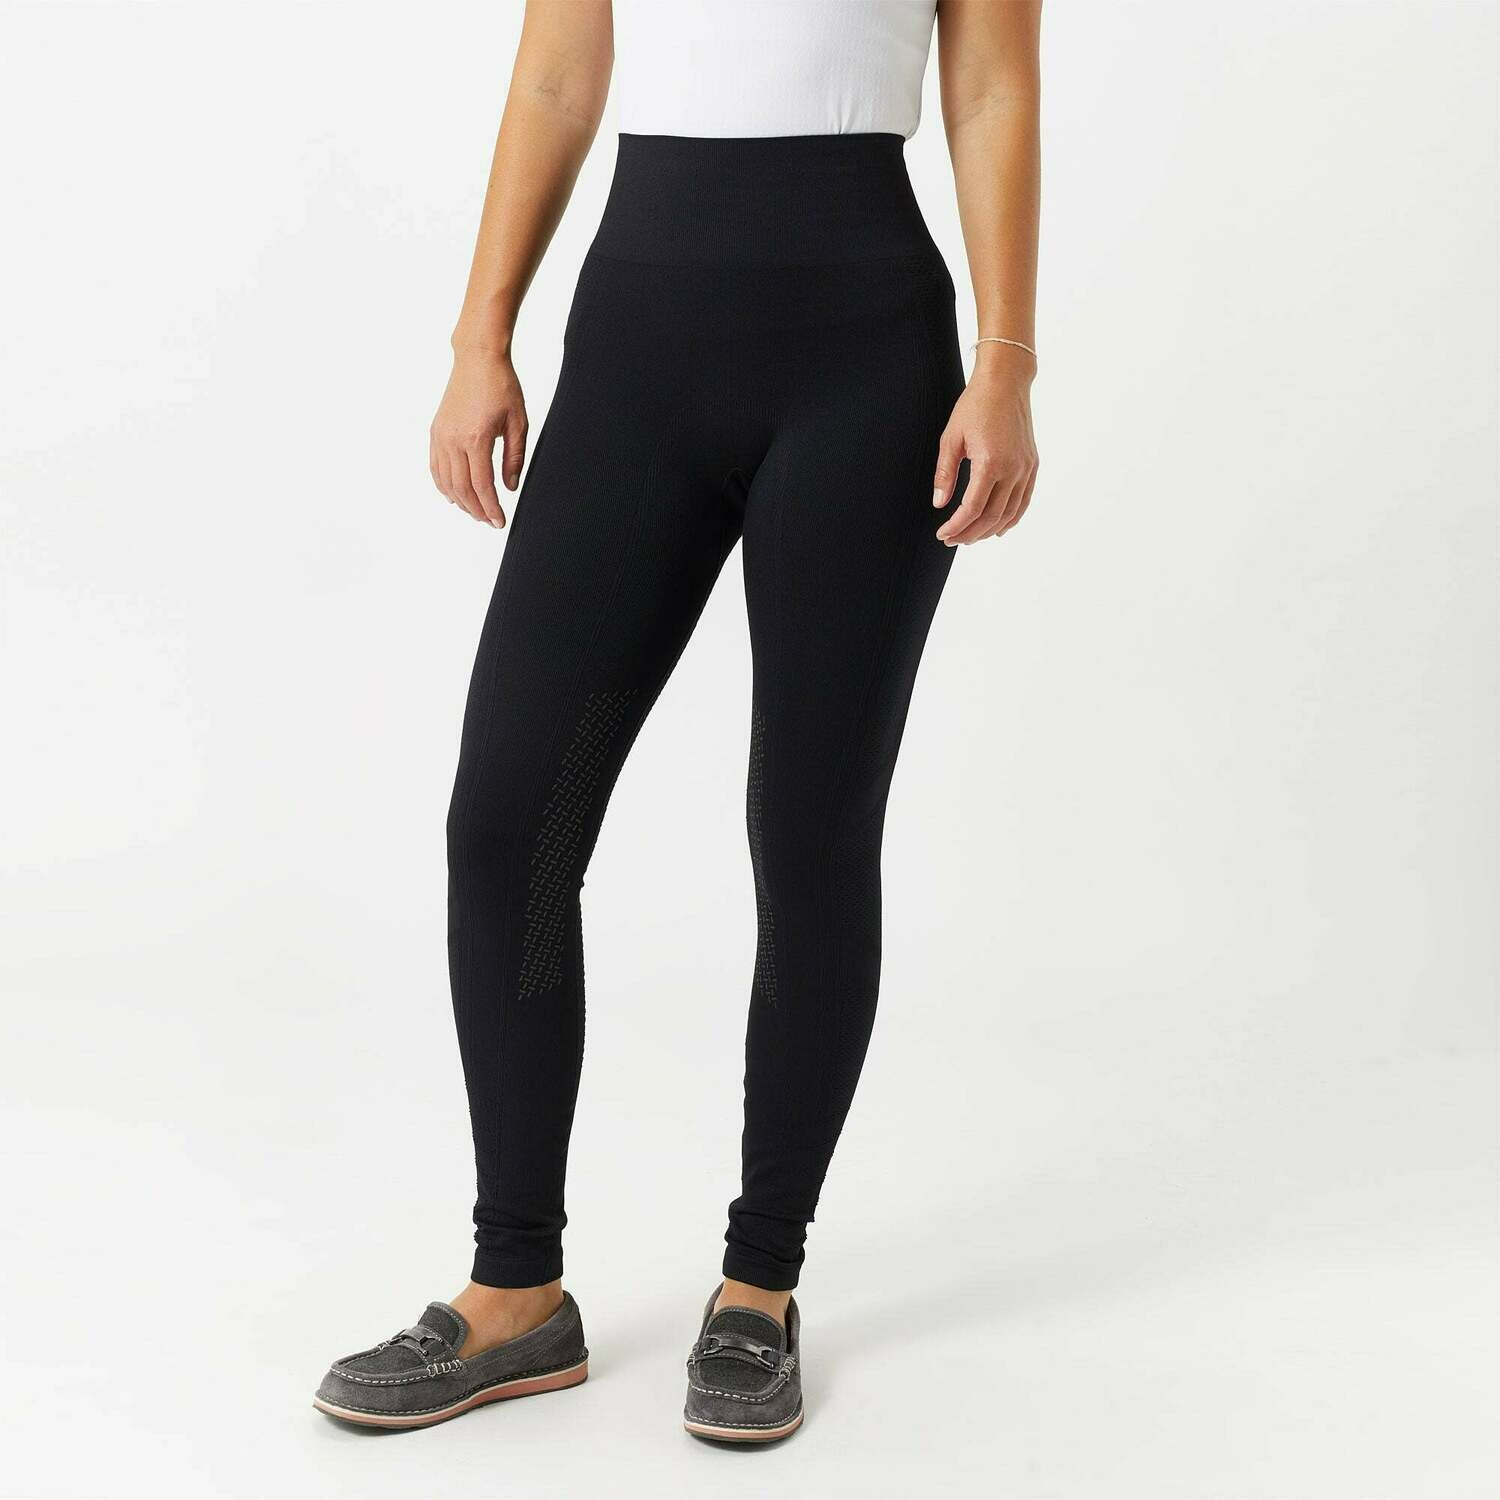 Gooderider Seamless Bodysculpting Tights